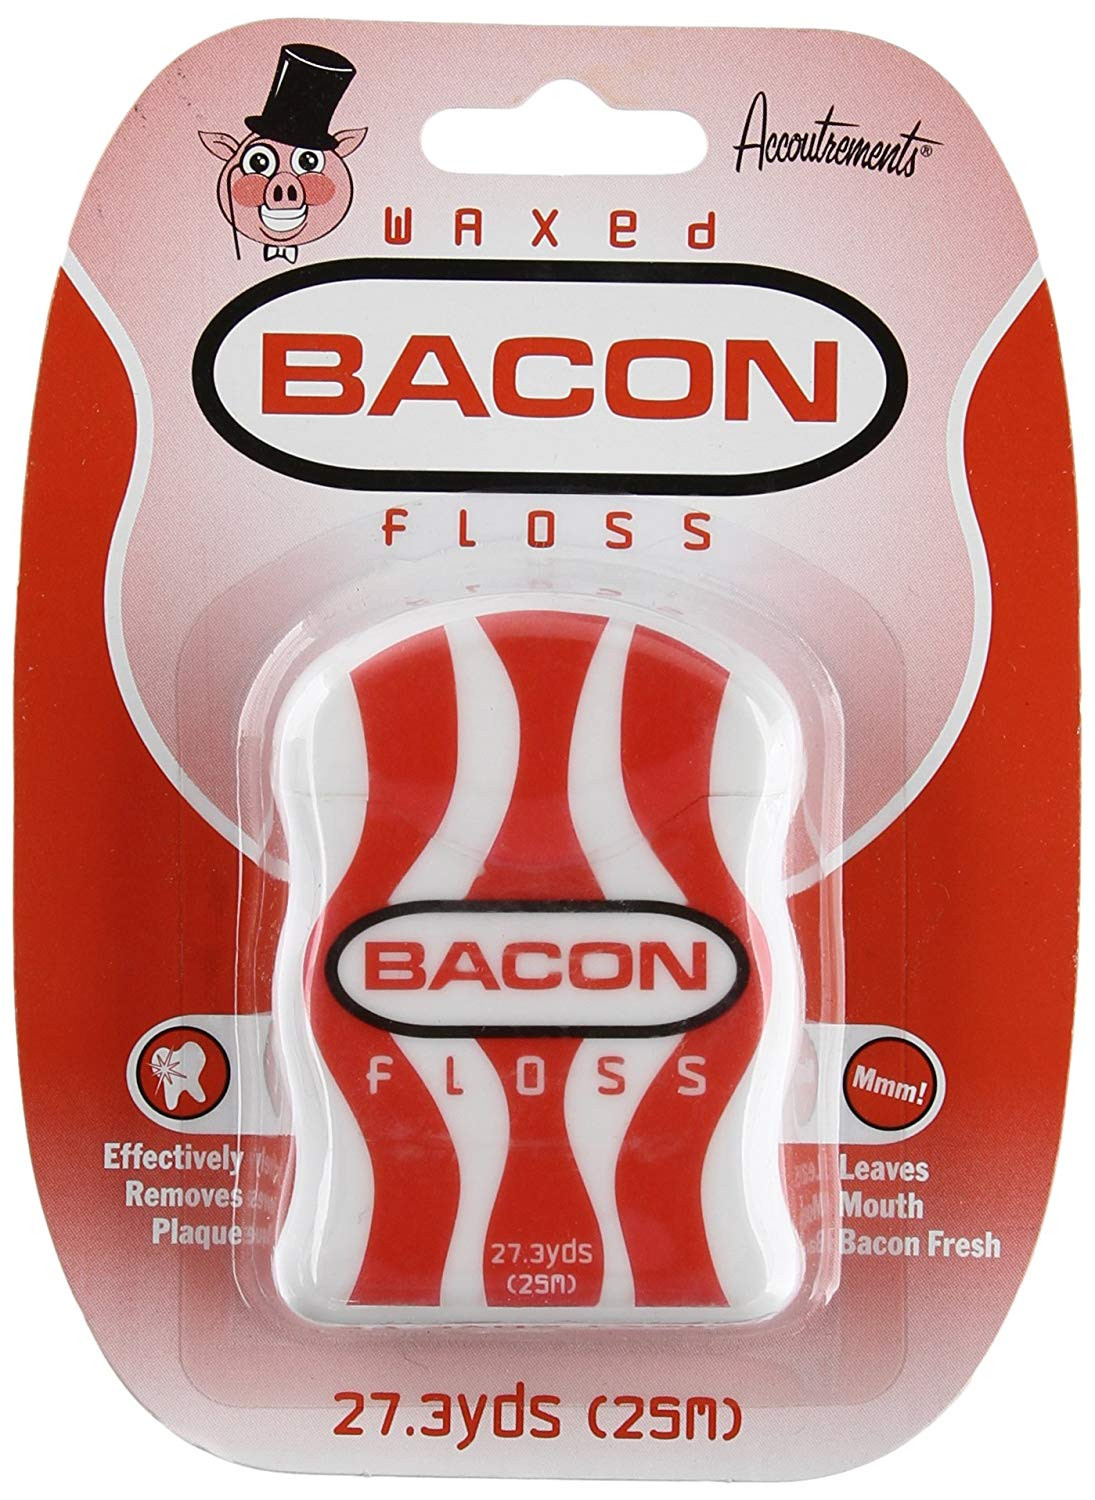 Accoutrements Waxed Bacon Floss